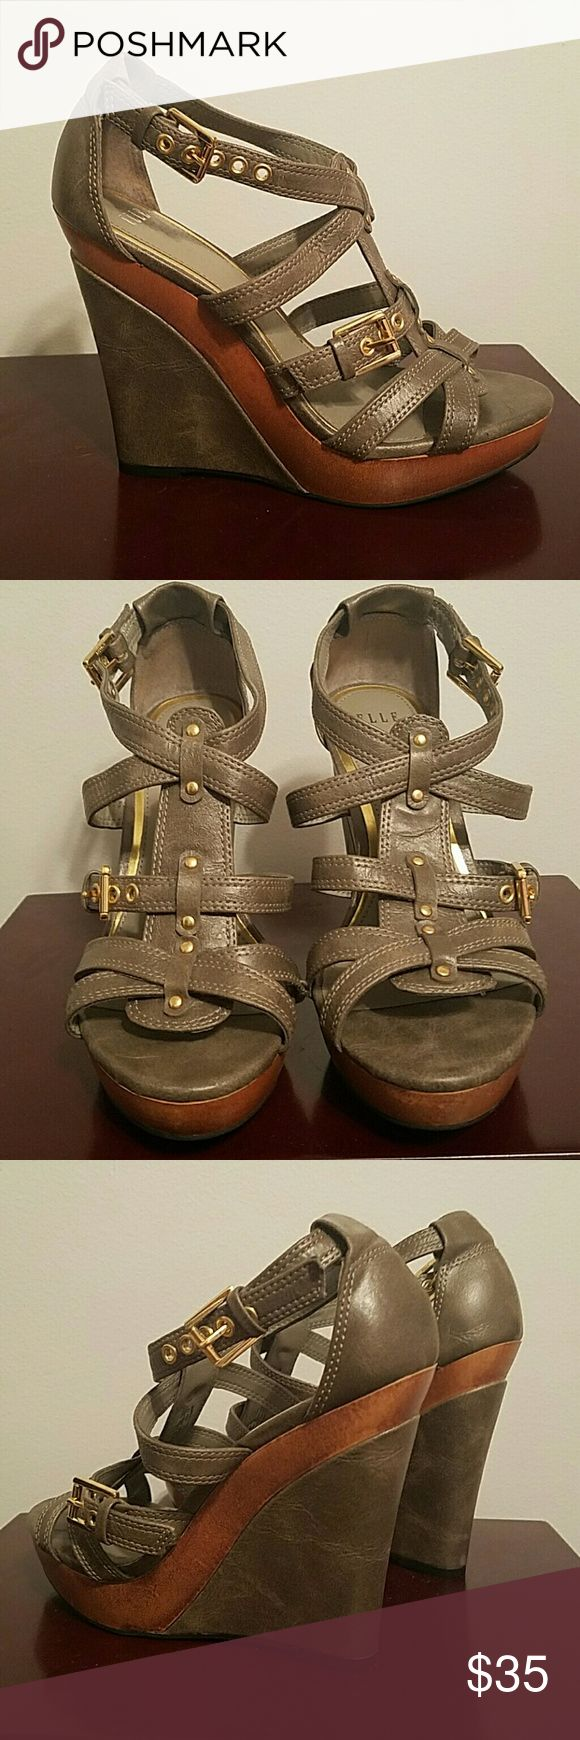 ELLE wedges Beautiful grey/taupe wedges with faux wood and gold detail. Elle brand purchased at Kohl's. Sadly they are way too small for me but they deserve to be worn! Open to offers Elle Shoes Wedges